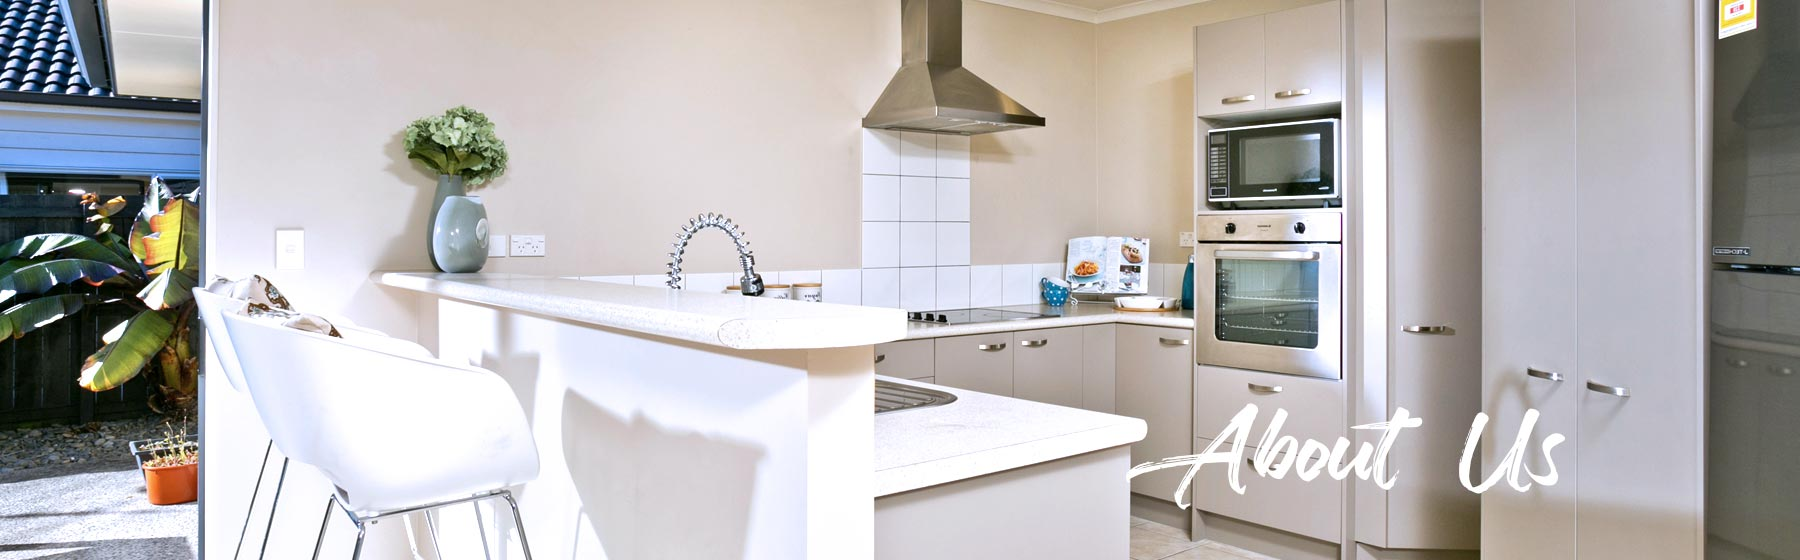 about-us About us - Kitchen Renovation, Bathroom Renovation - Auckland